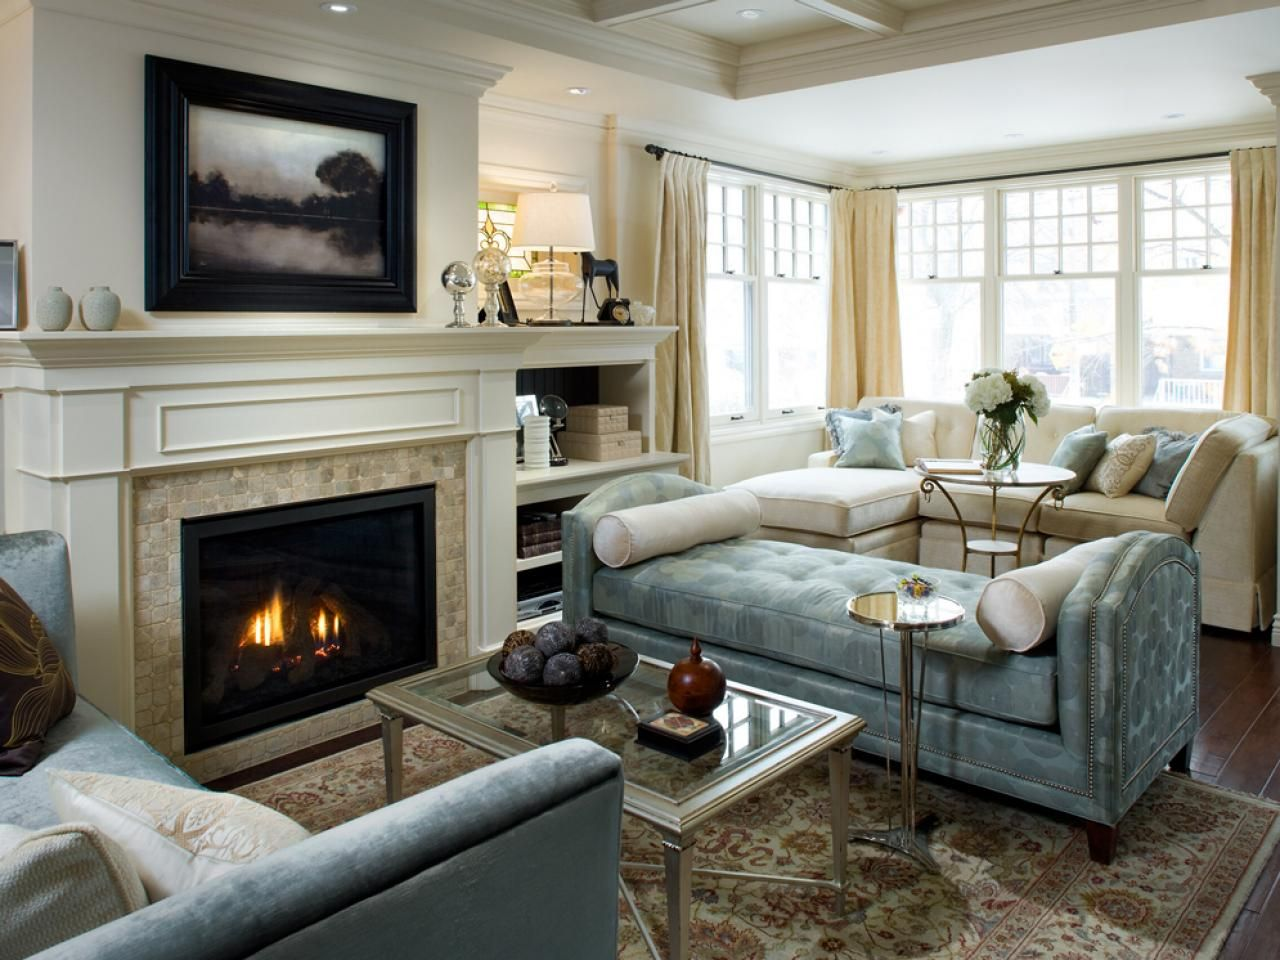 9 Fireplace Design Ideas From Candice Olson | Pinterest | Candice ...